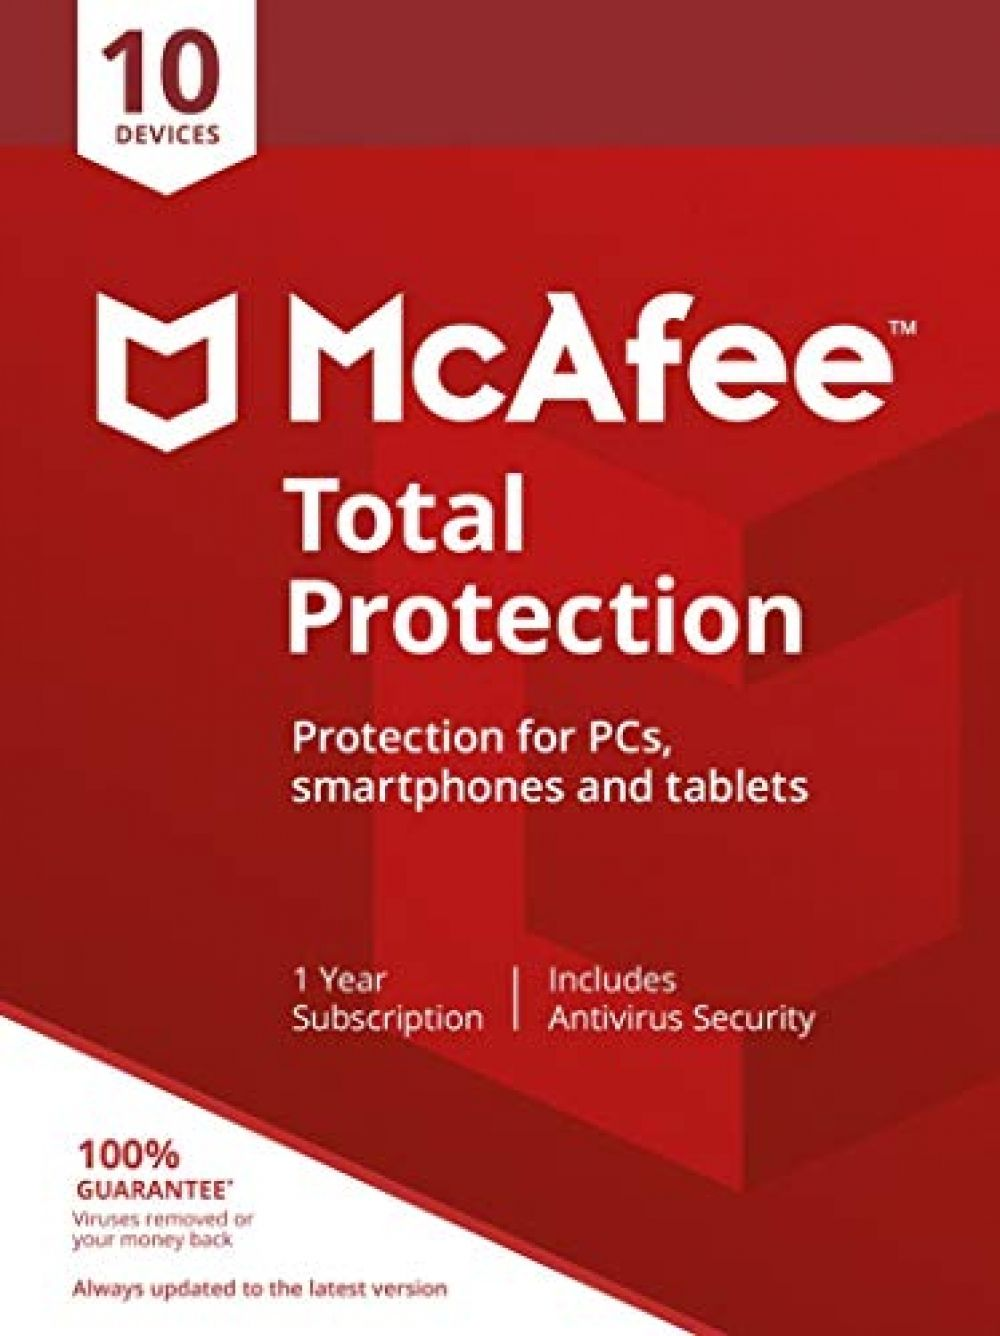 Mcafee Total Protection 10 Devices Pc Mac Android Smartphones Activation Code By Post Smartphone Coding Mcafee